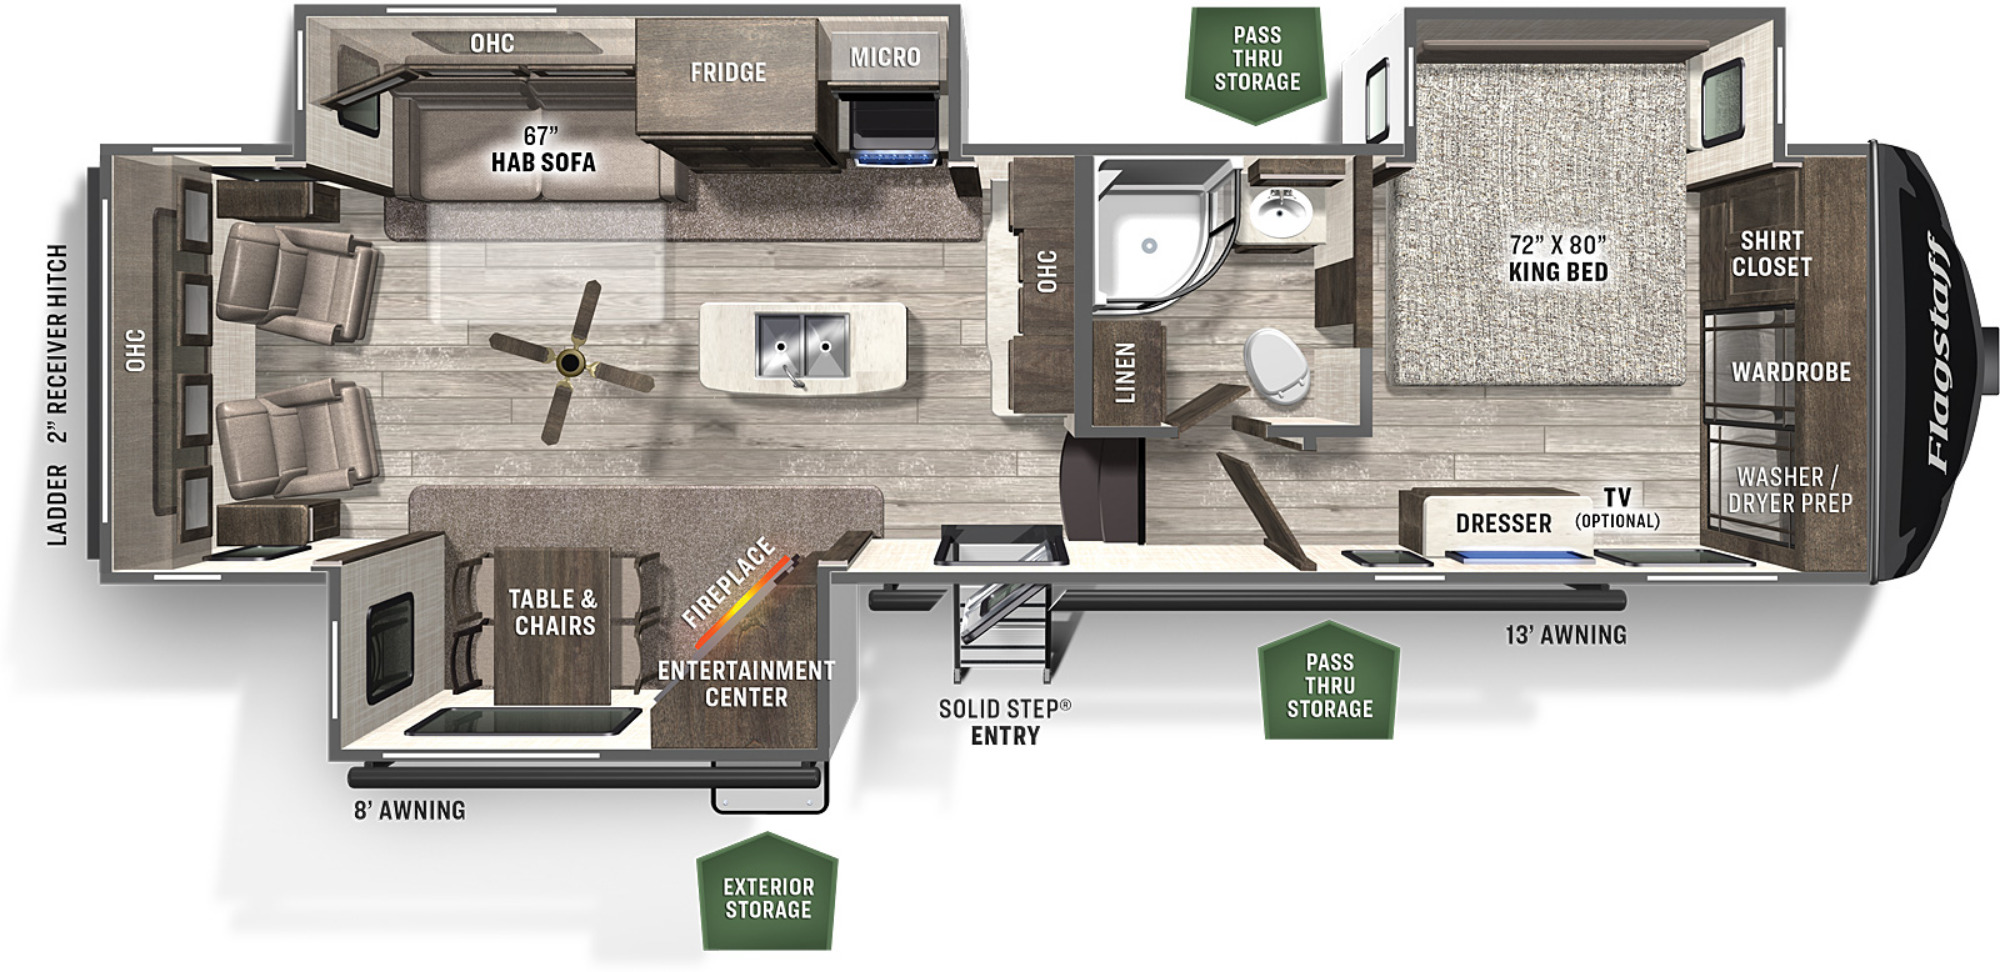 View Floor Plan for 2021 FOREST RIVER FLAGSTAFF CLASSIC SUPER LITE 8529IKSB